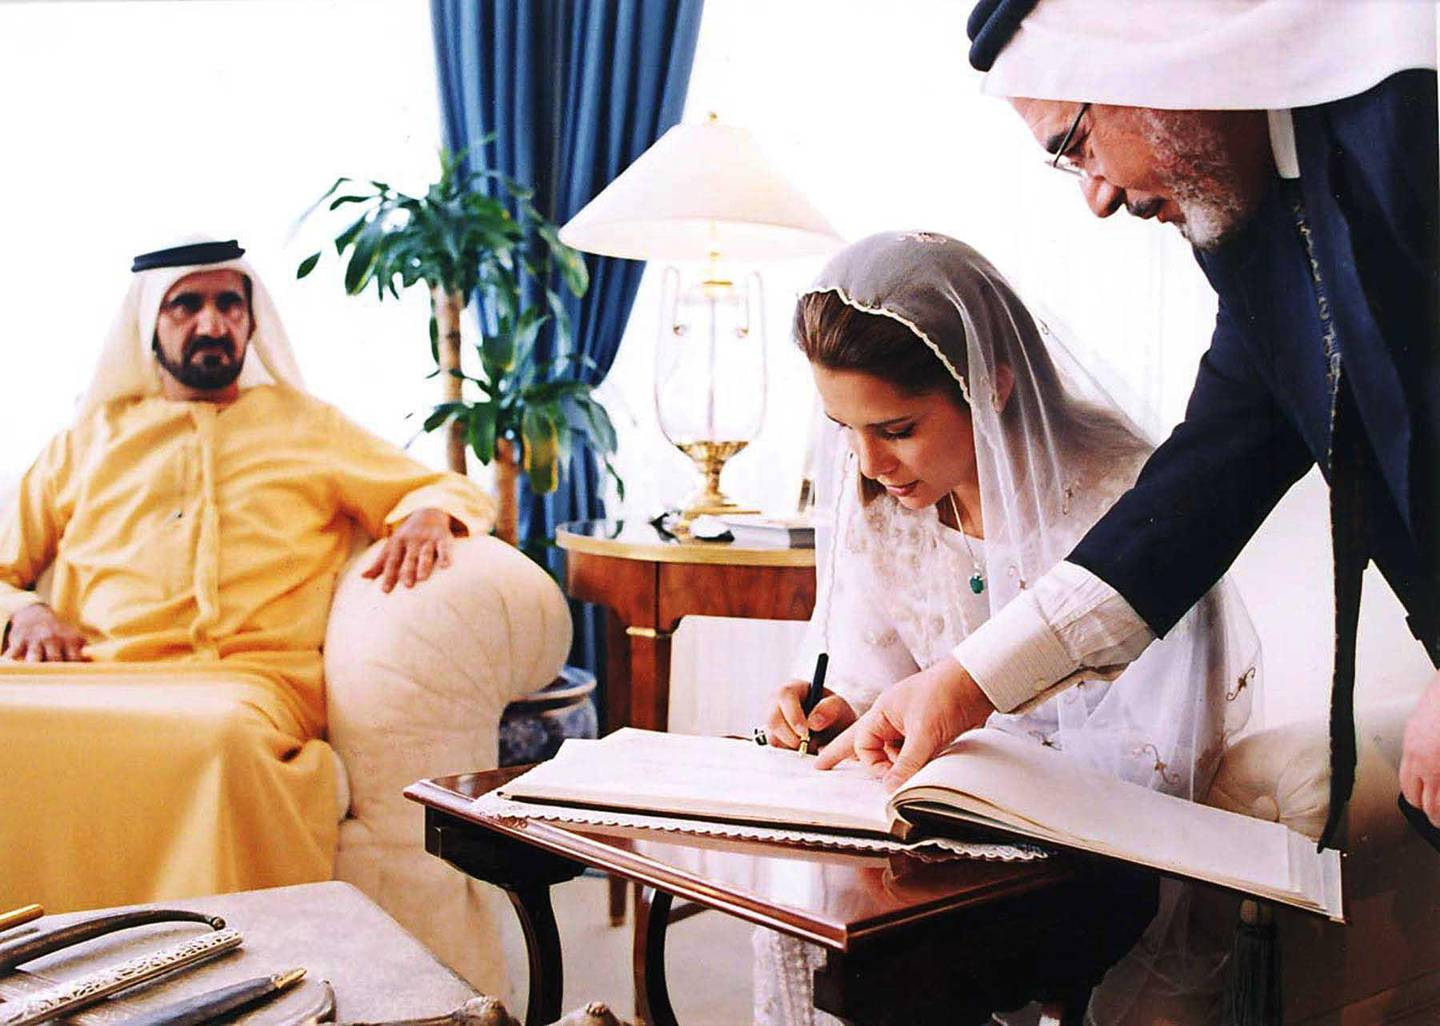 Jordan's Princess Haya, King Abdullah II's half-sister, right, signs her wedding register to Dubai's Crown Prince and Defence Minister Mohammed bin Rashed al-Maktoum, who is seen sitting at left, at the Baraka Palace in Amman, Jordan, Saturday April 10, 2004. Princess Haya, 29, is the eldest daughter of Jordan's late King Hussein from his third wife, Alia-Touqan, a Palestinian Jordanian who died in a 1977 helicopter crash. Prince Sheik Mohammed and Princess Haya,  were married Saturday.(AP Photo/Royal Palace)